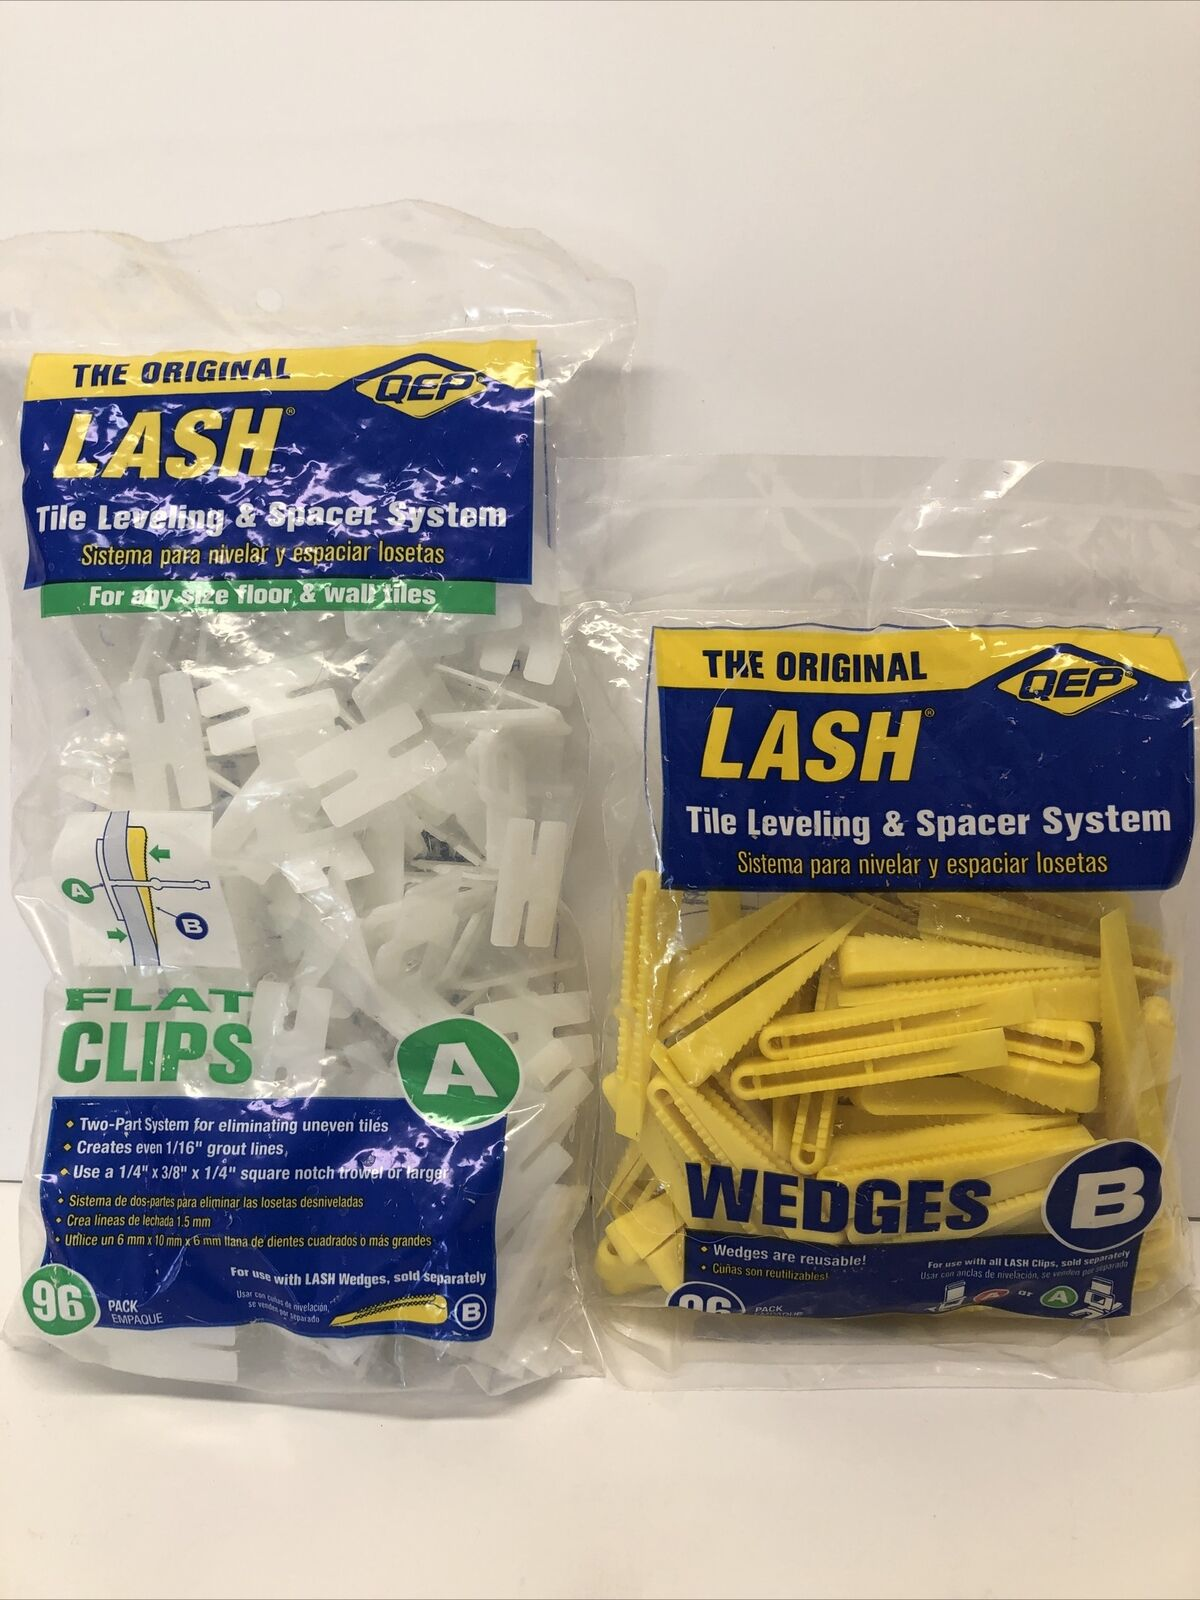 qep lash tile leveling spacer clips any size floor and wall tiles 96 pk